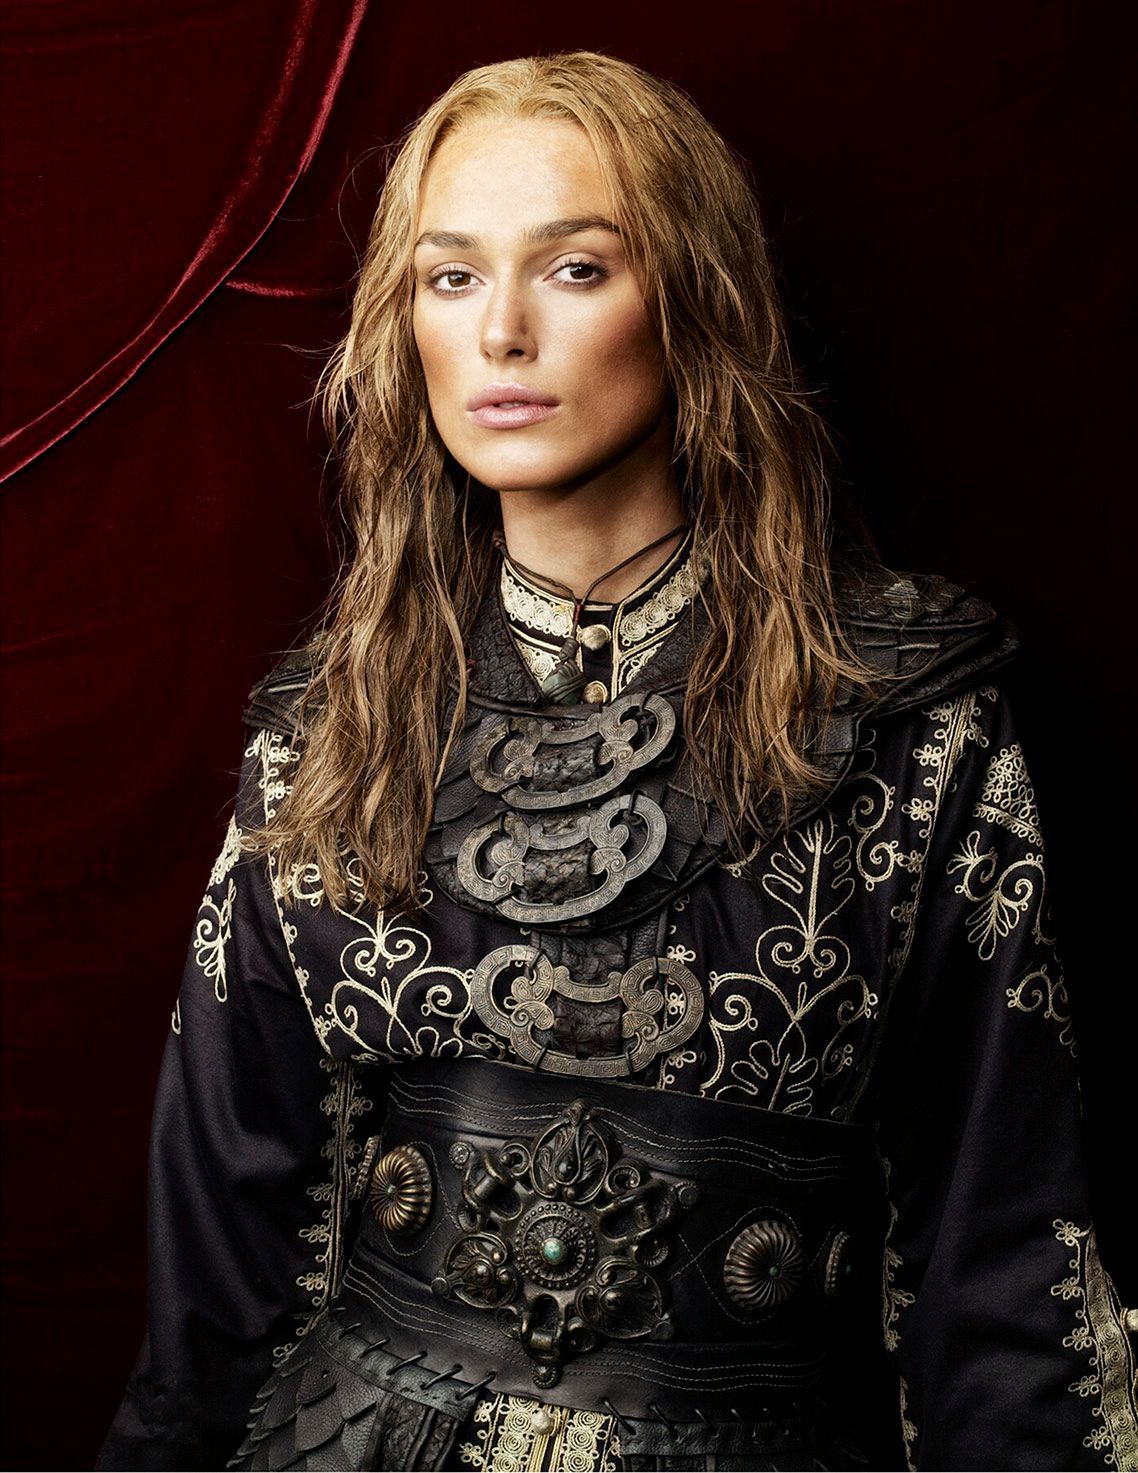 KEIRA KNIGHTLY • PIRATES OF THE CARIBBEAN • AT WORLD'S END